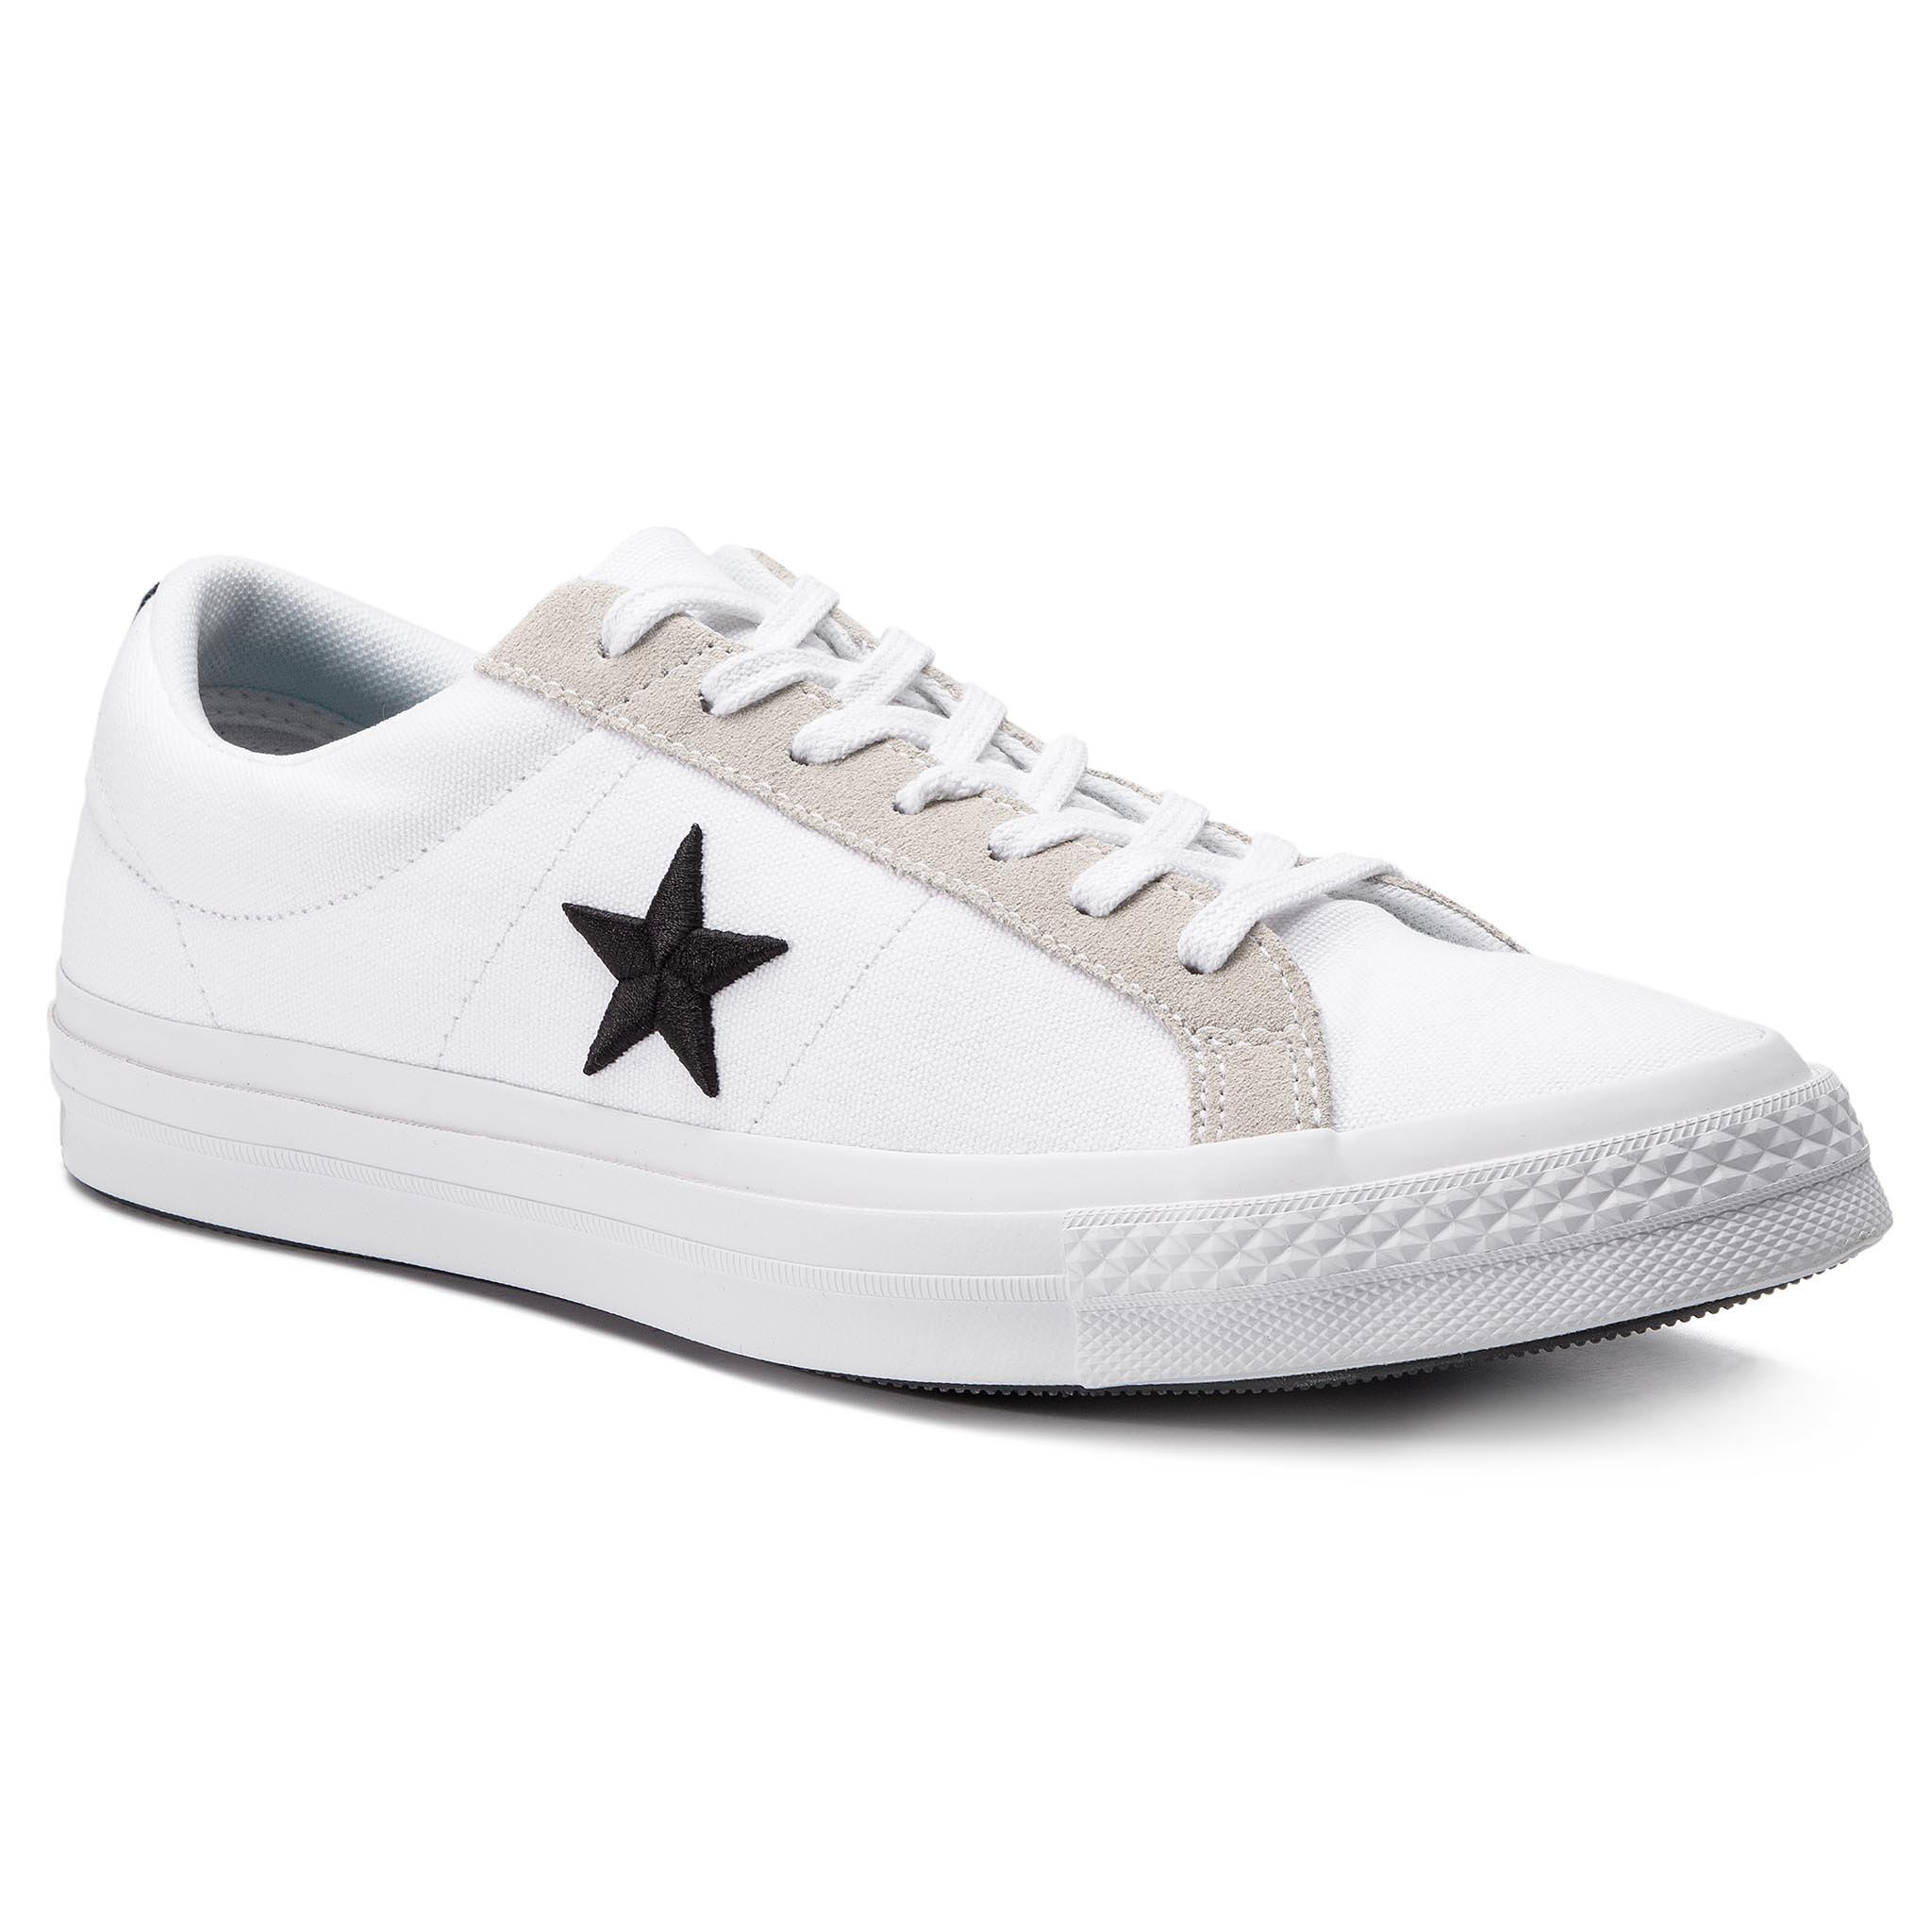 e77fd91560bffb Plimsolls CONVERSE - One Star Ox 160624C White Gym Red White ...